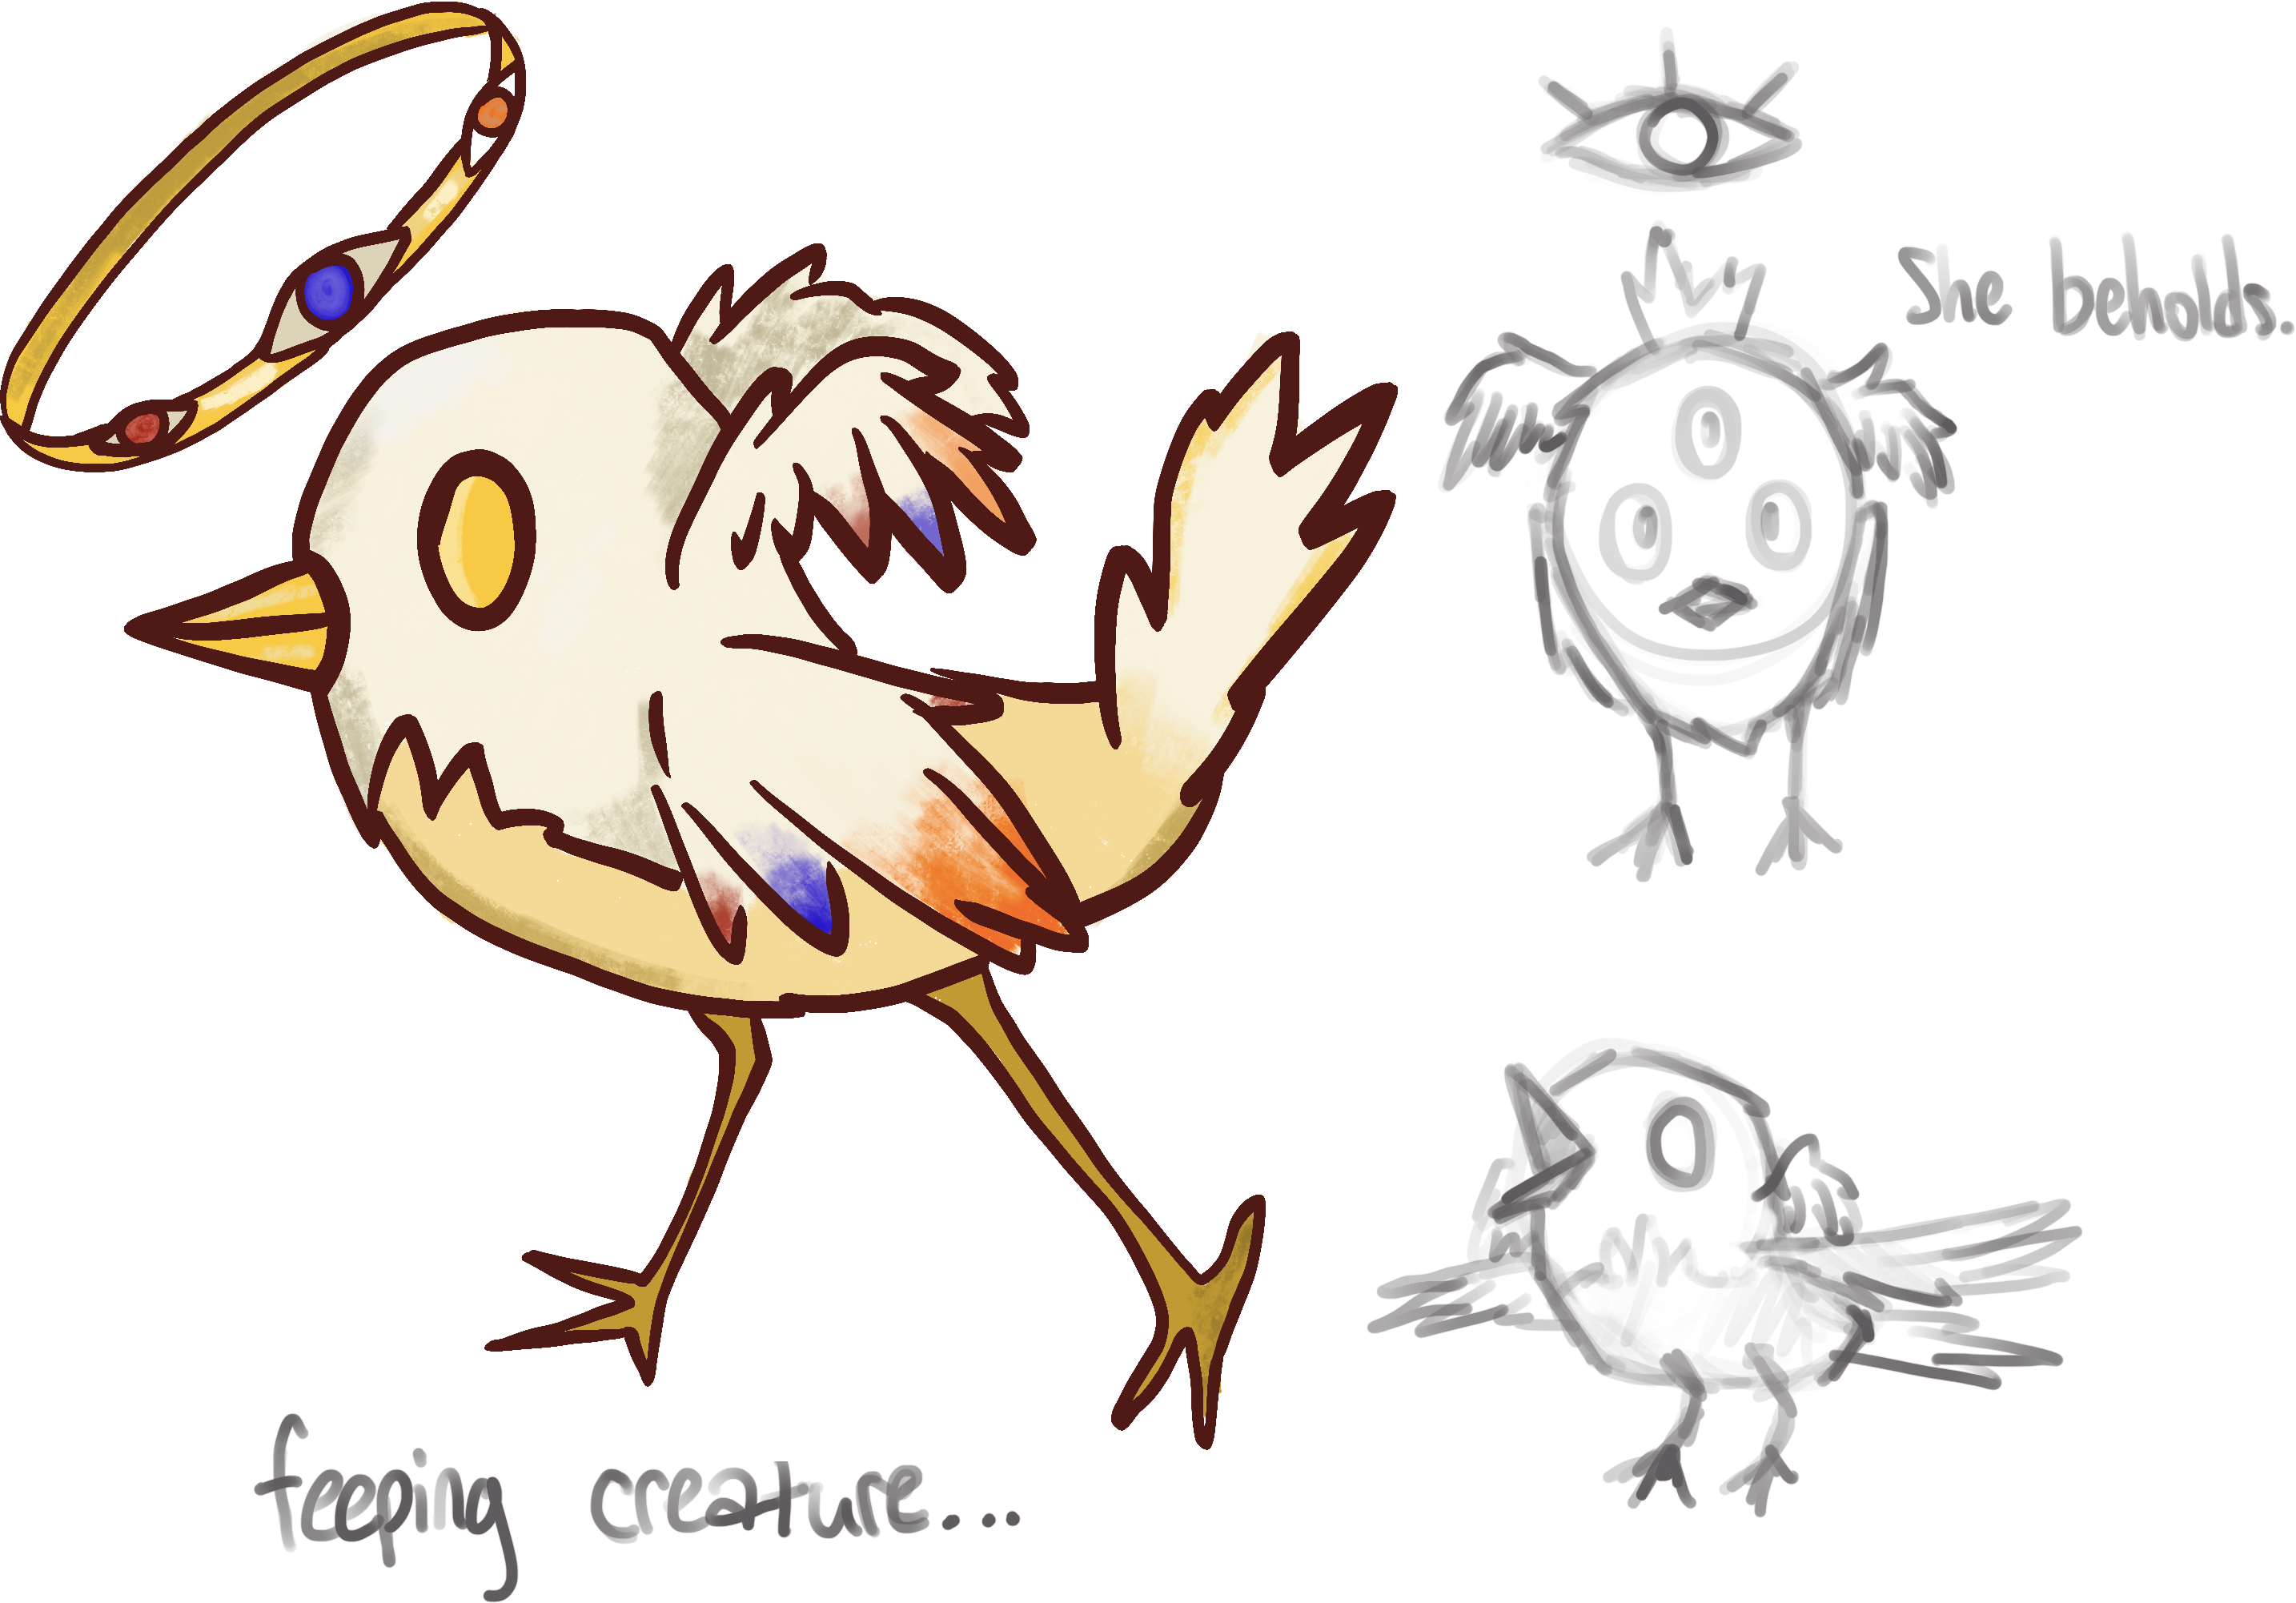 Fletcher as depicted by @ghostmusing. A small white bird with golden eyes and a haloof blue and red-orange hues.